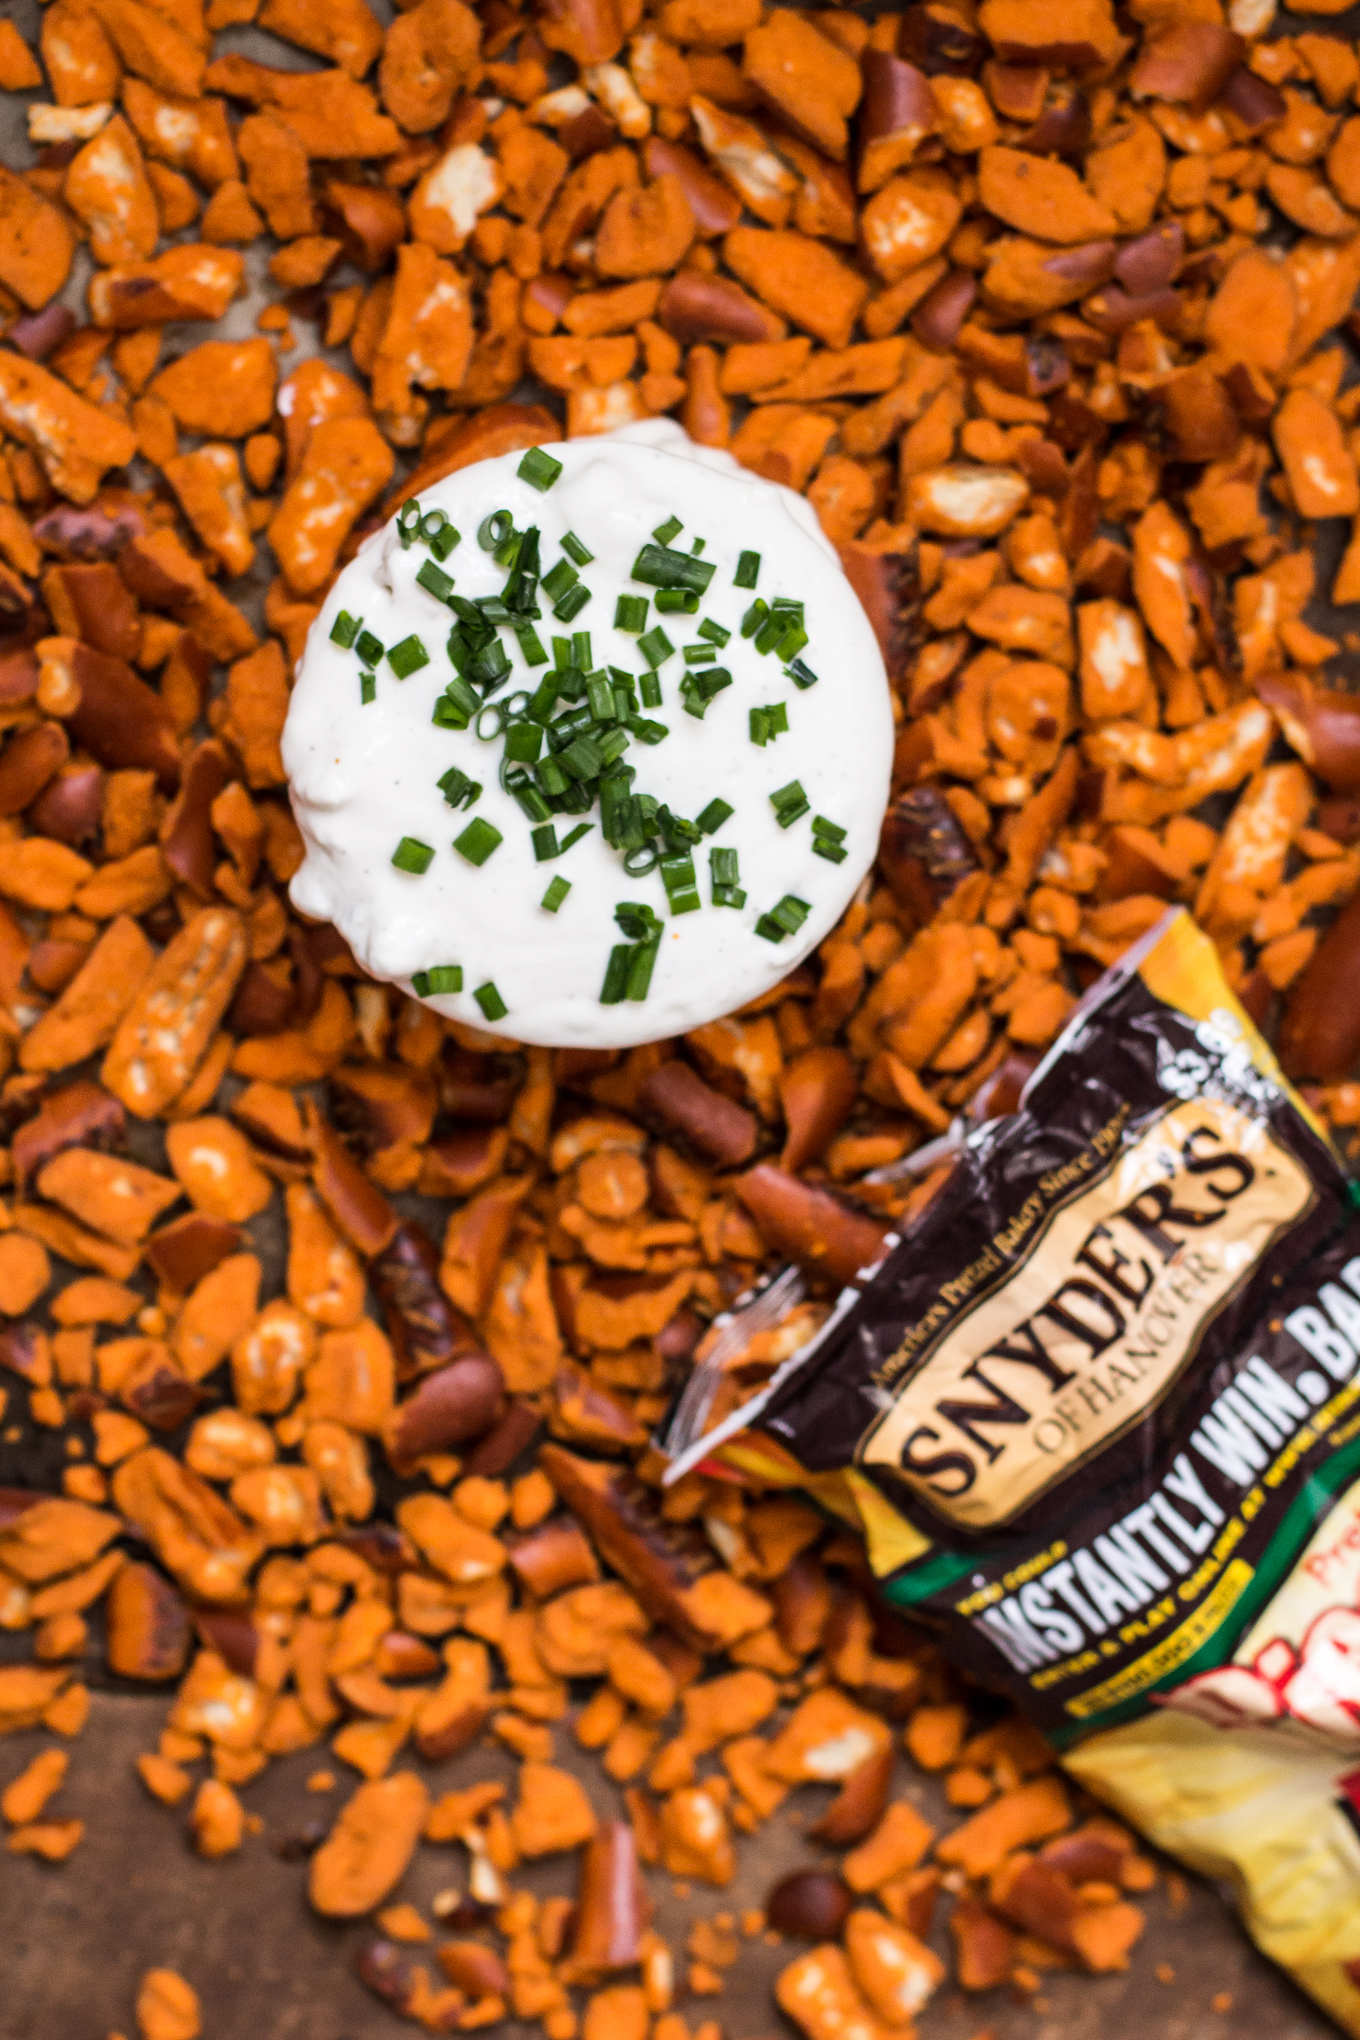 bleu cheese dip, buffalo flavored pretzels, game day dips, snyders of hanover, greek yogurt dips